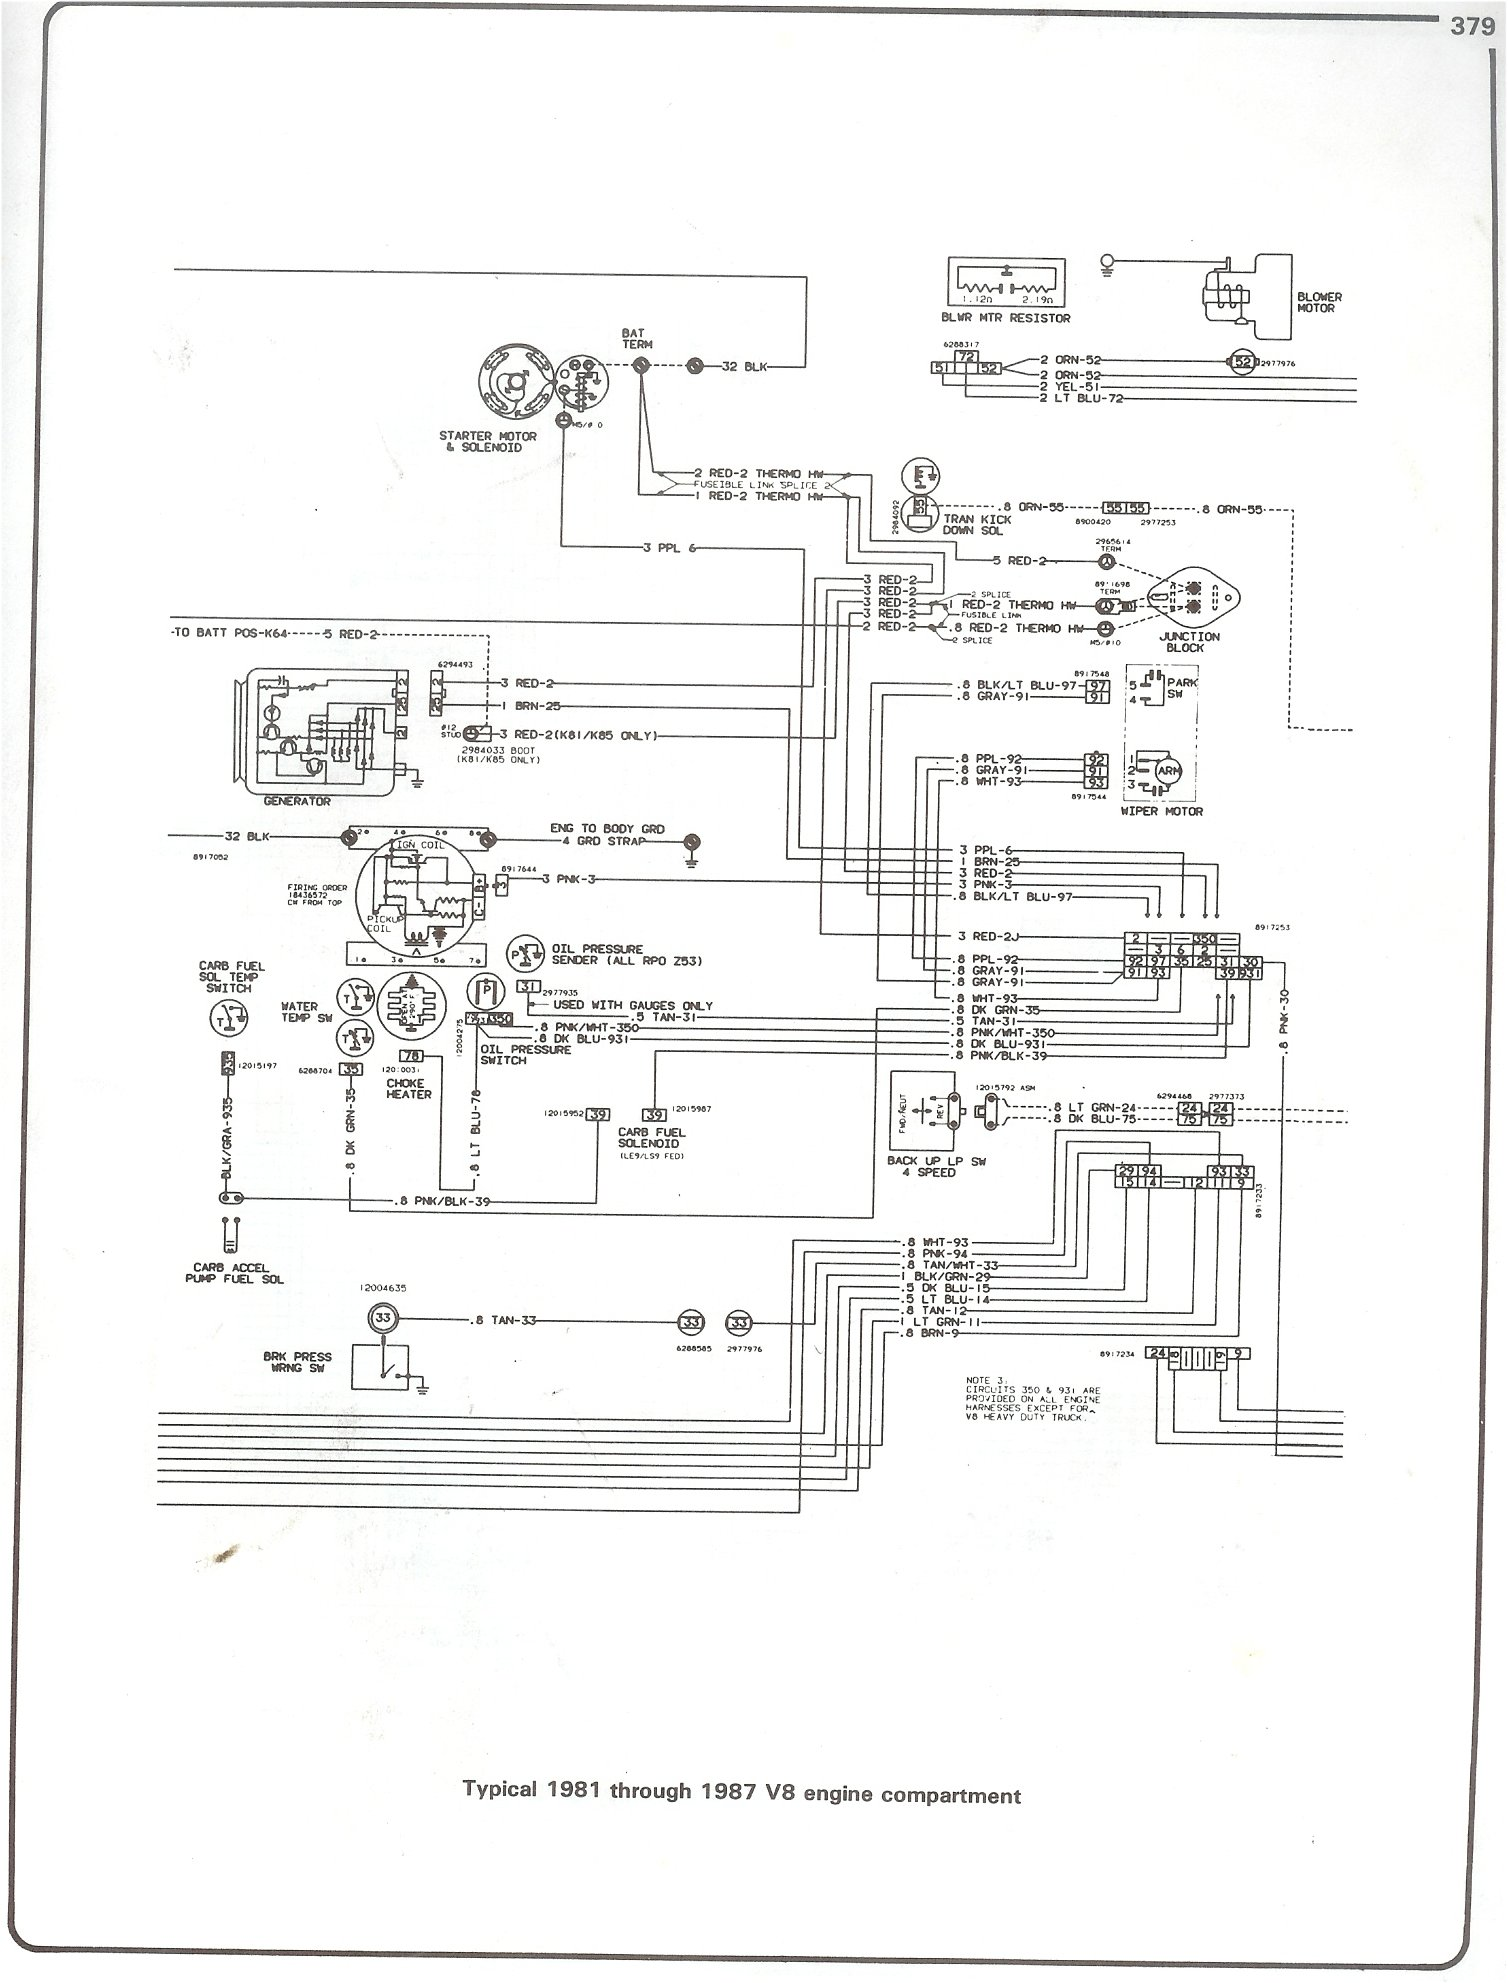 complete 73 87 wiring diagrams rh forum 73 87chevytrucks com 1986 chevy truck wiring diagram 1986 chevy truck starter wiring diagram